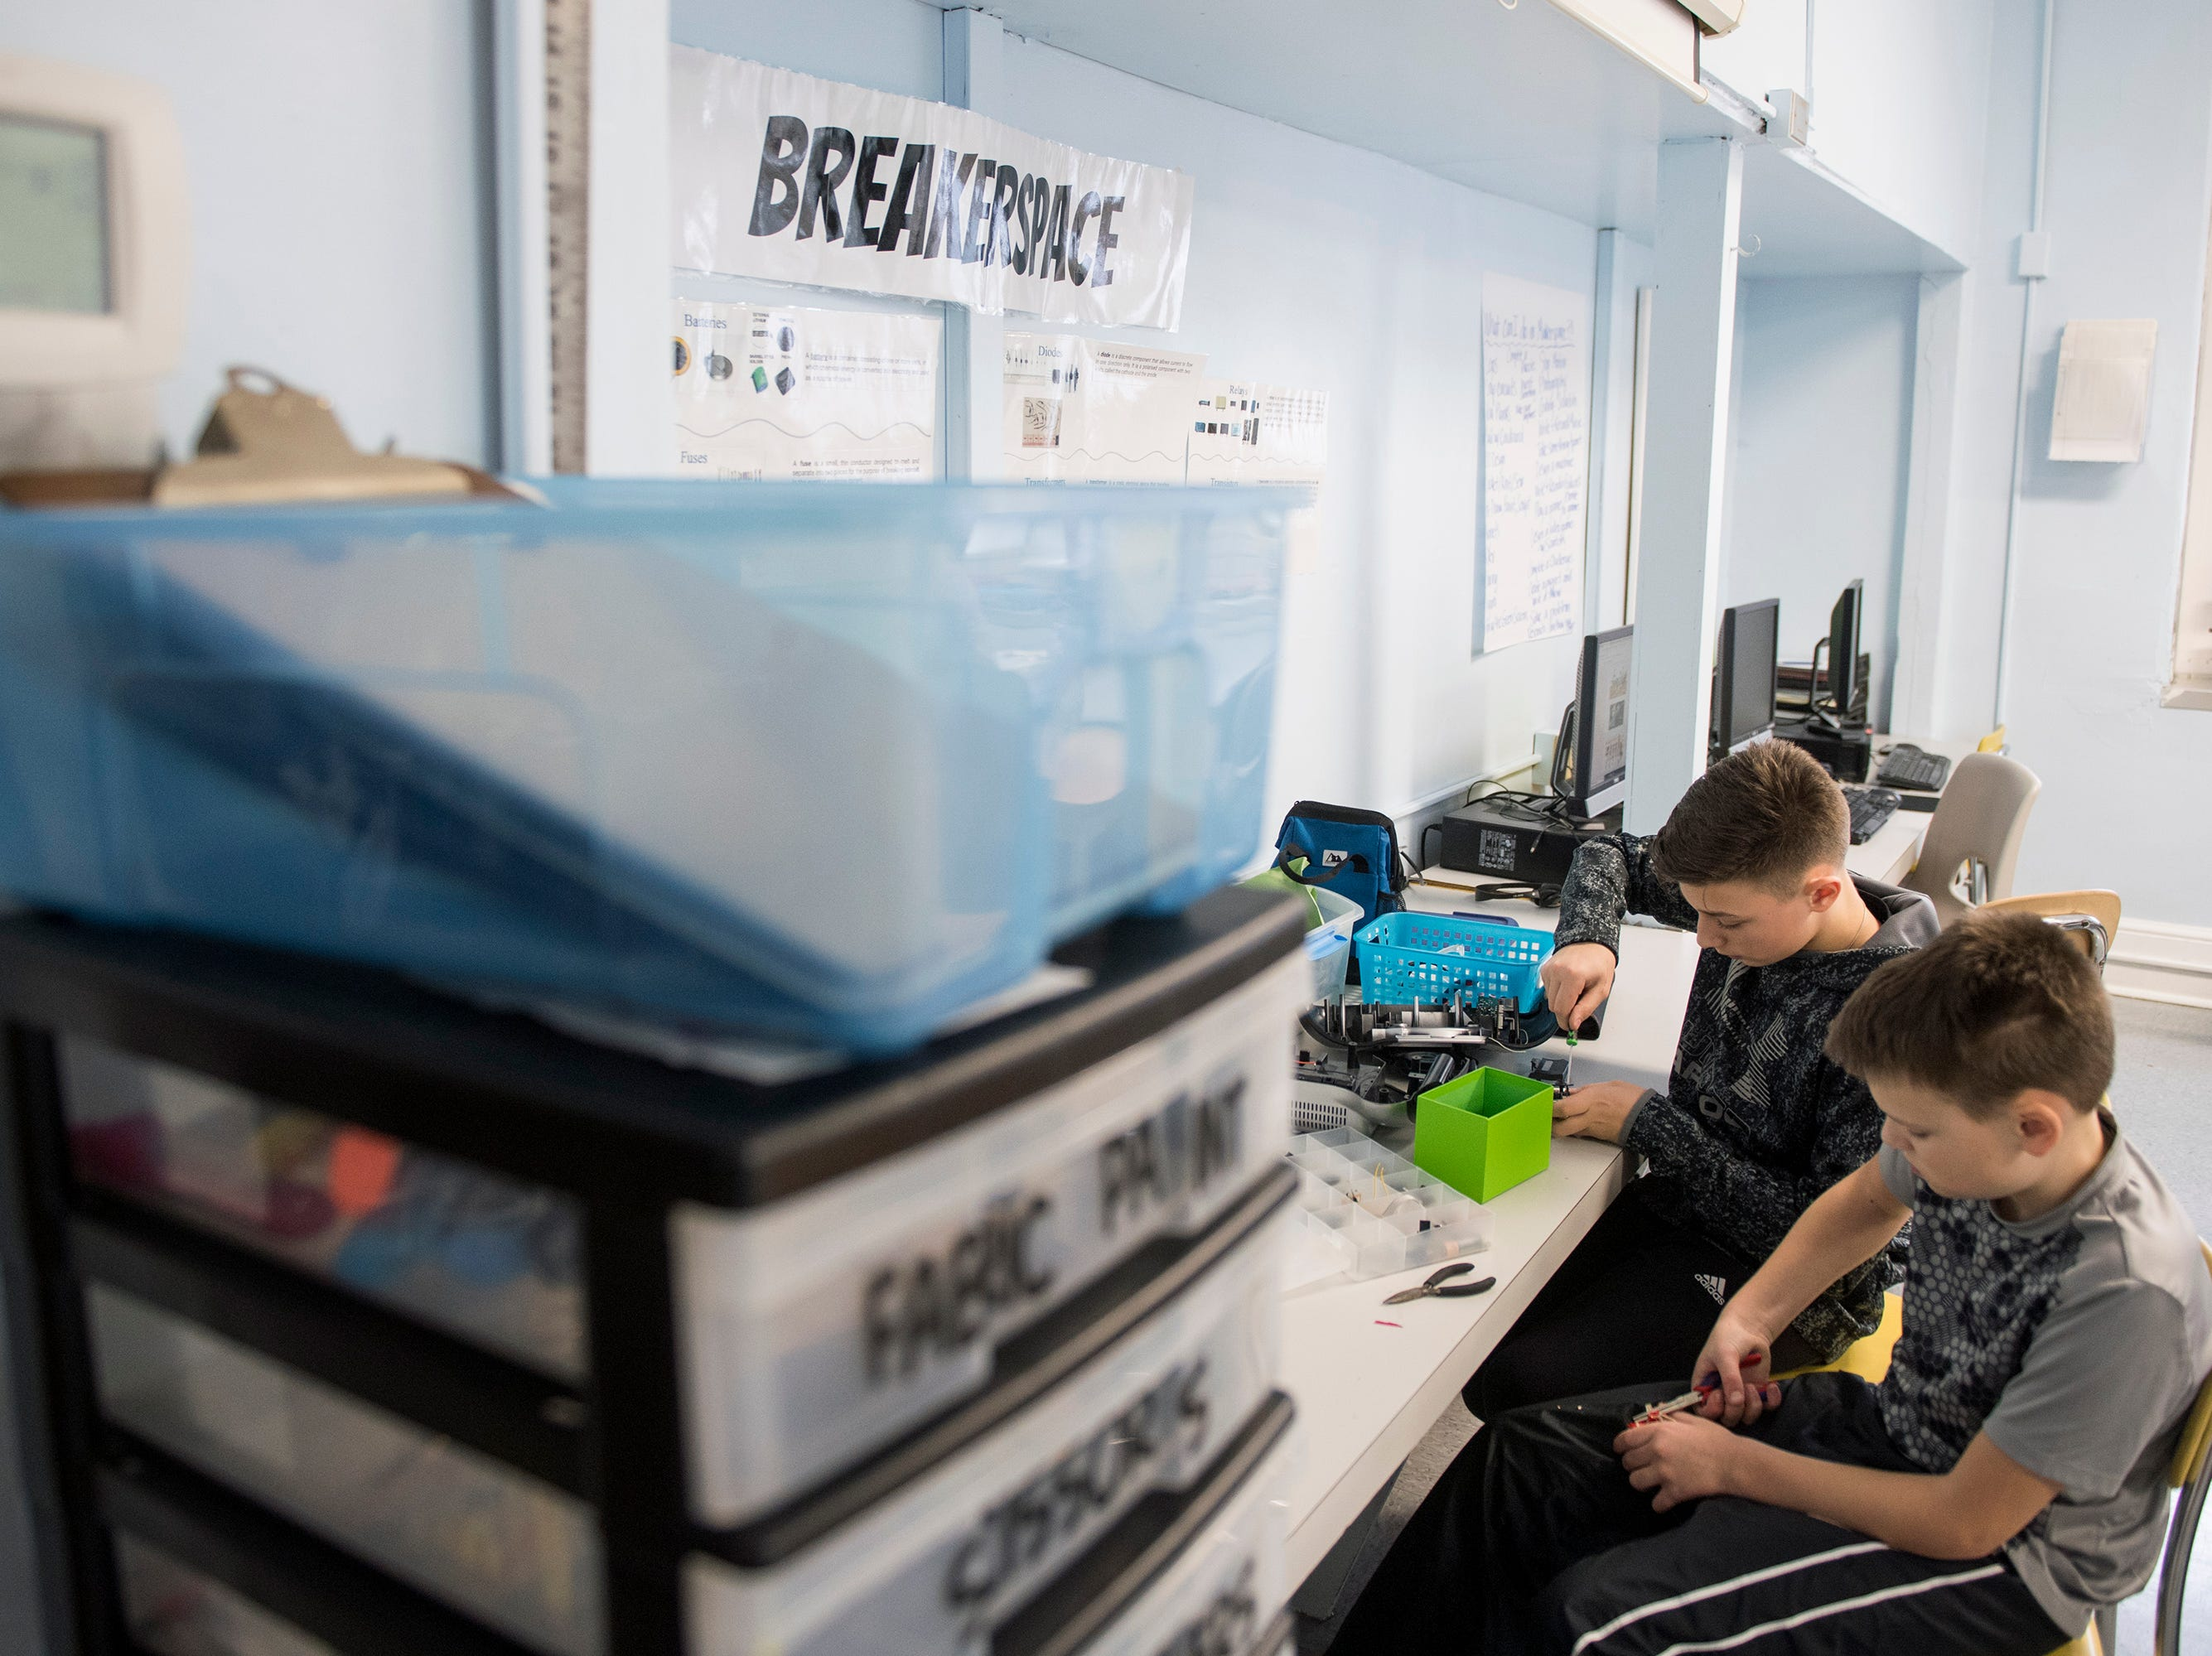 Gino Riccardi, 12, left, and Andrew McIntyre, 13, take apart radios at Pitman Middle School's MakerSpace Thursday, Jan. 10, 2019 in Pitman, N.J.